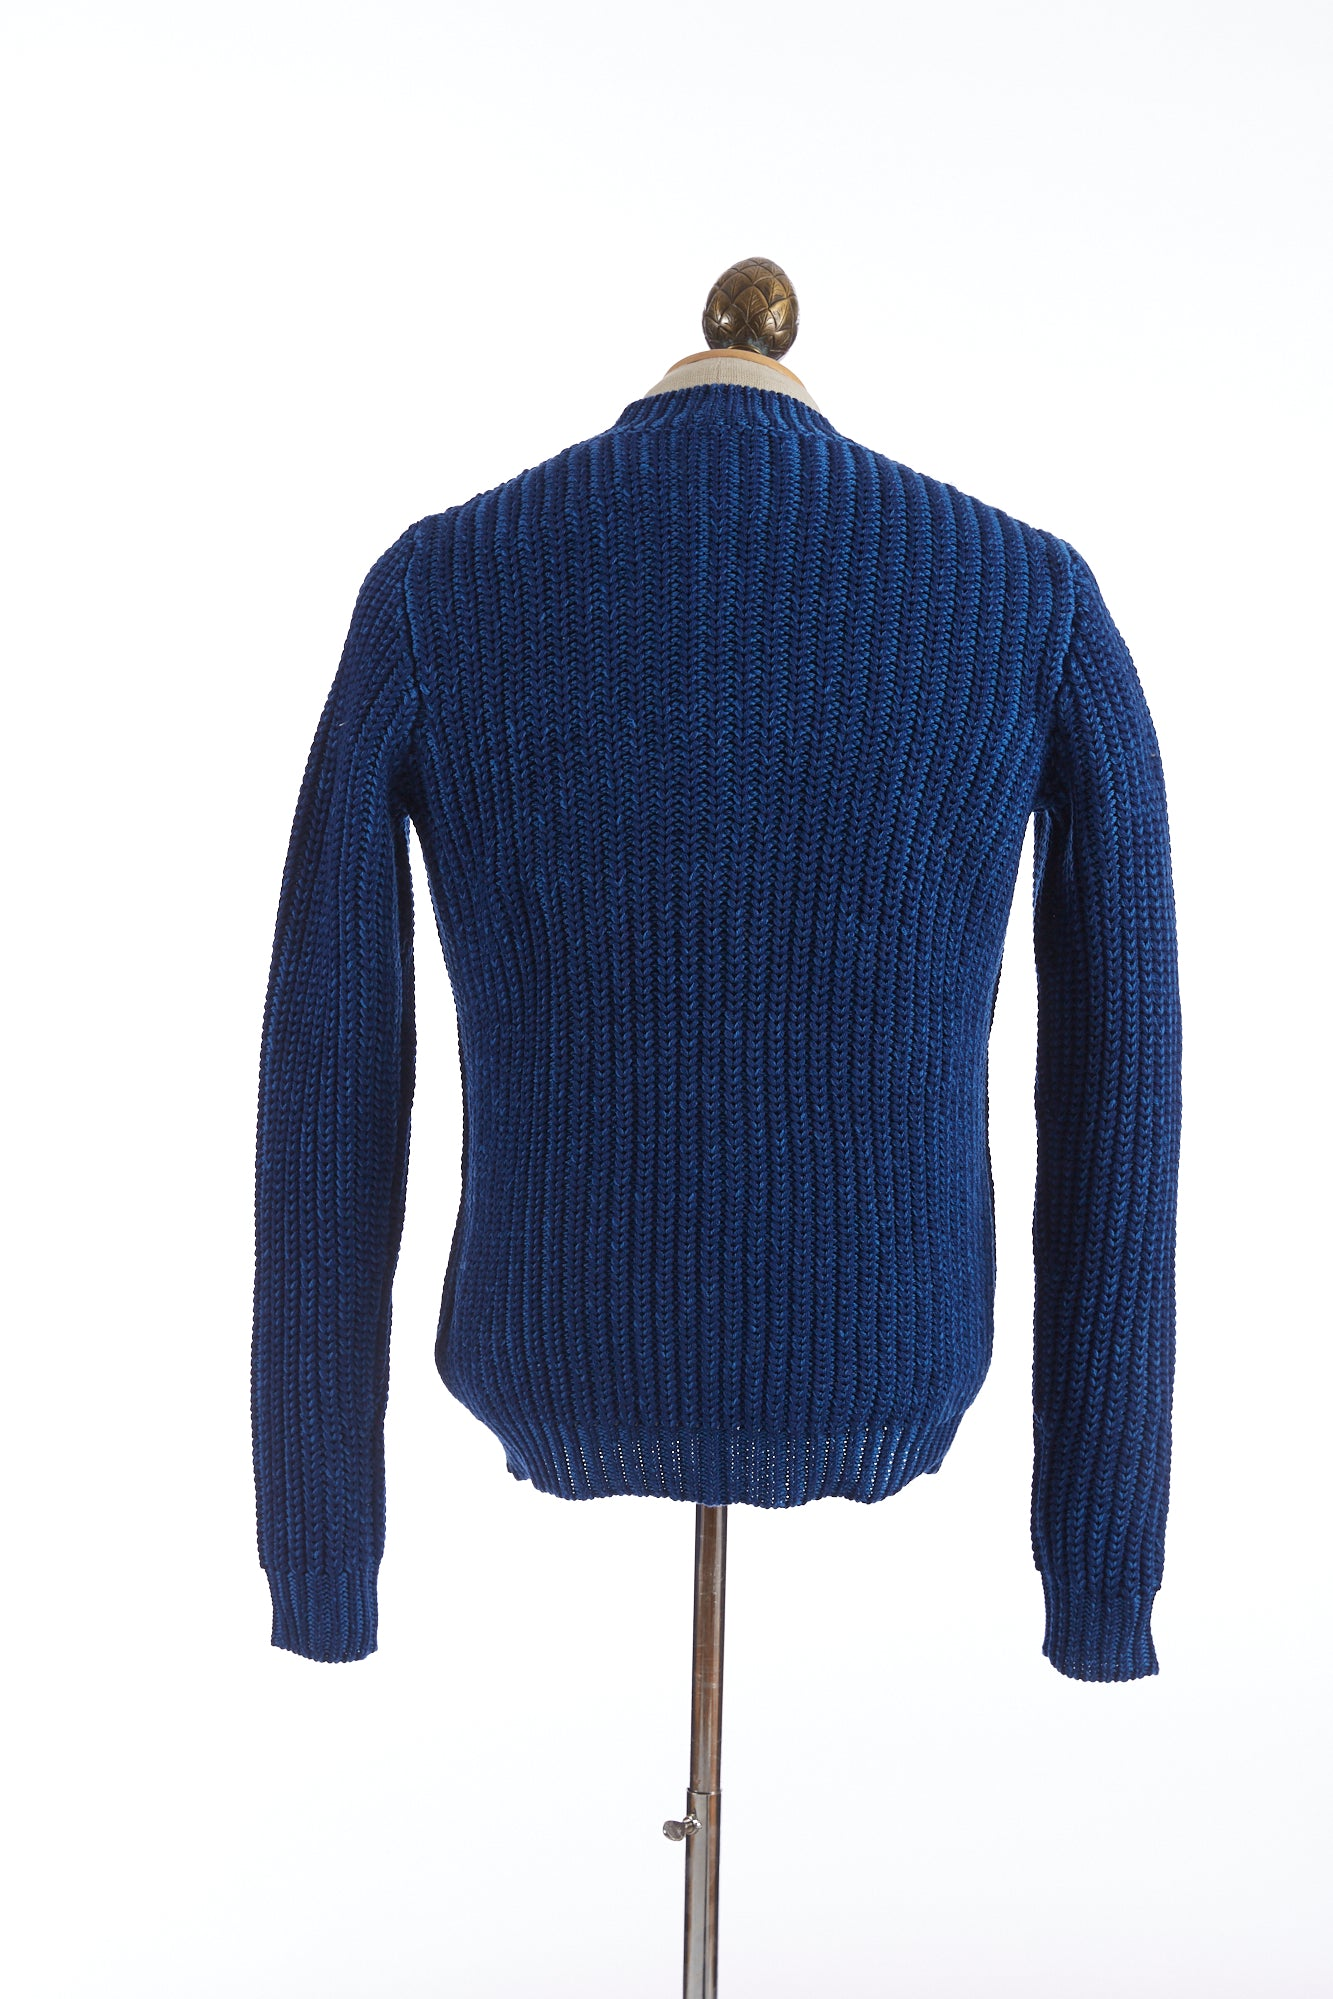 Roberto Collina Melange Blue Cable Knit Crewneck Sweater